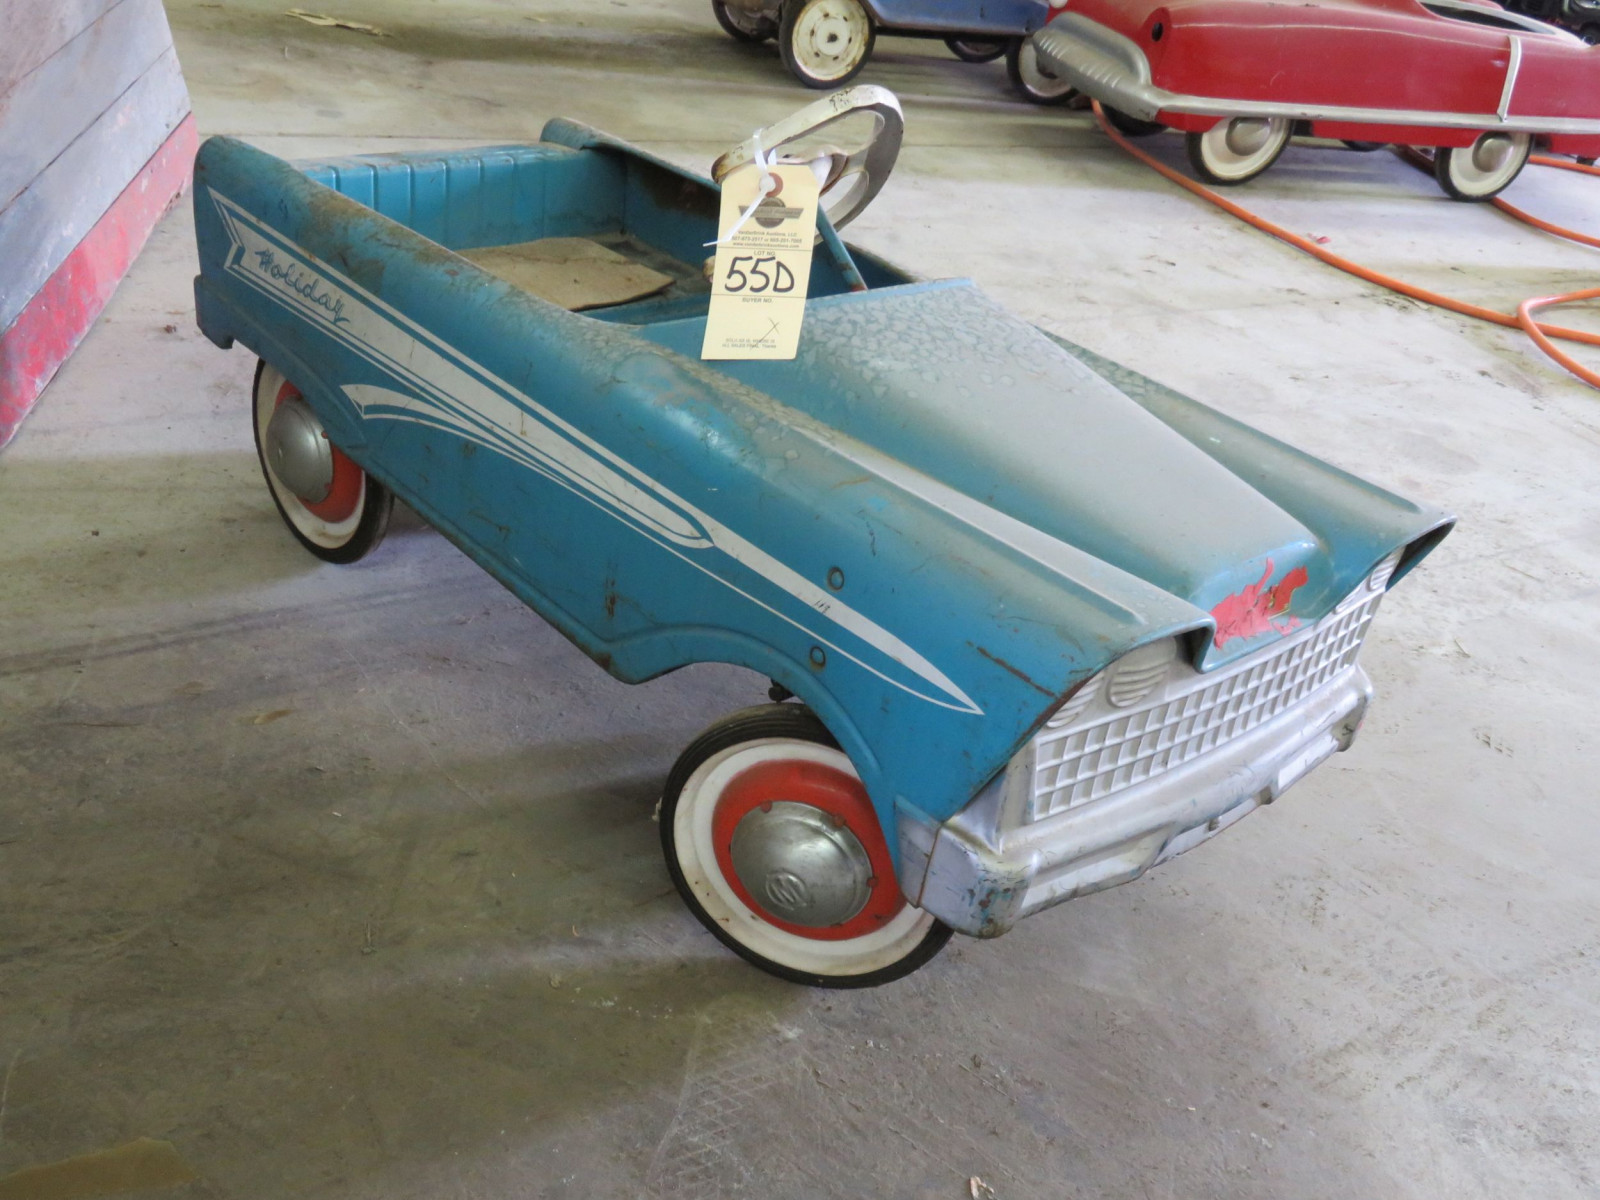 Vintage Murray Holiday Pedal Car - Image 3